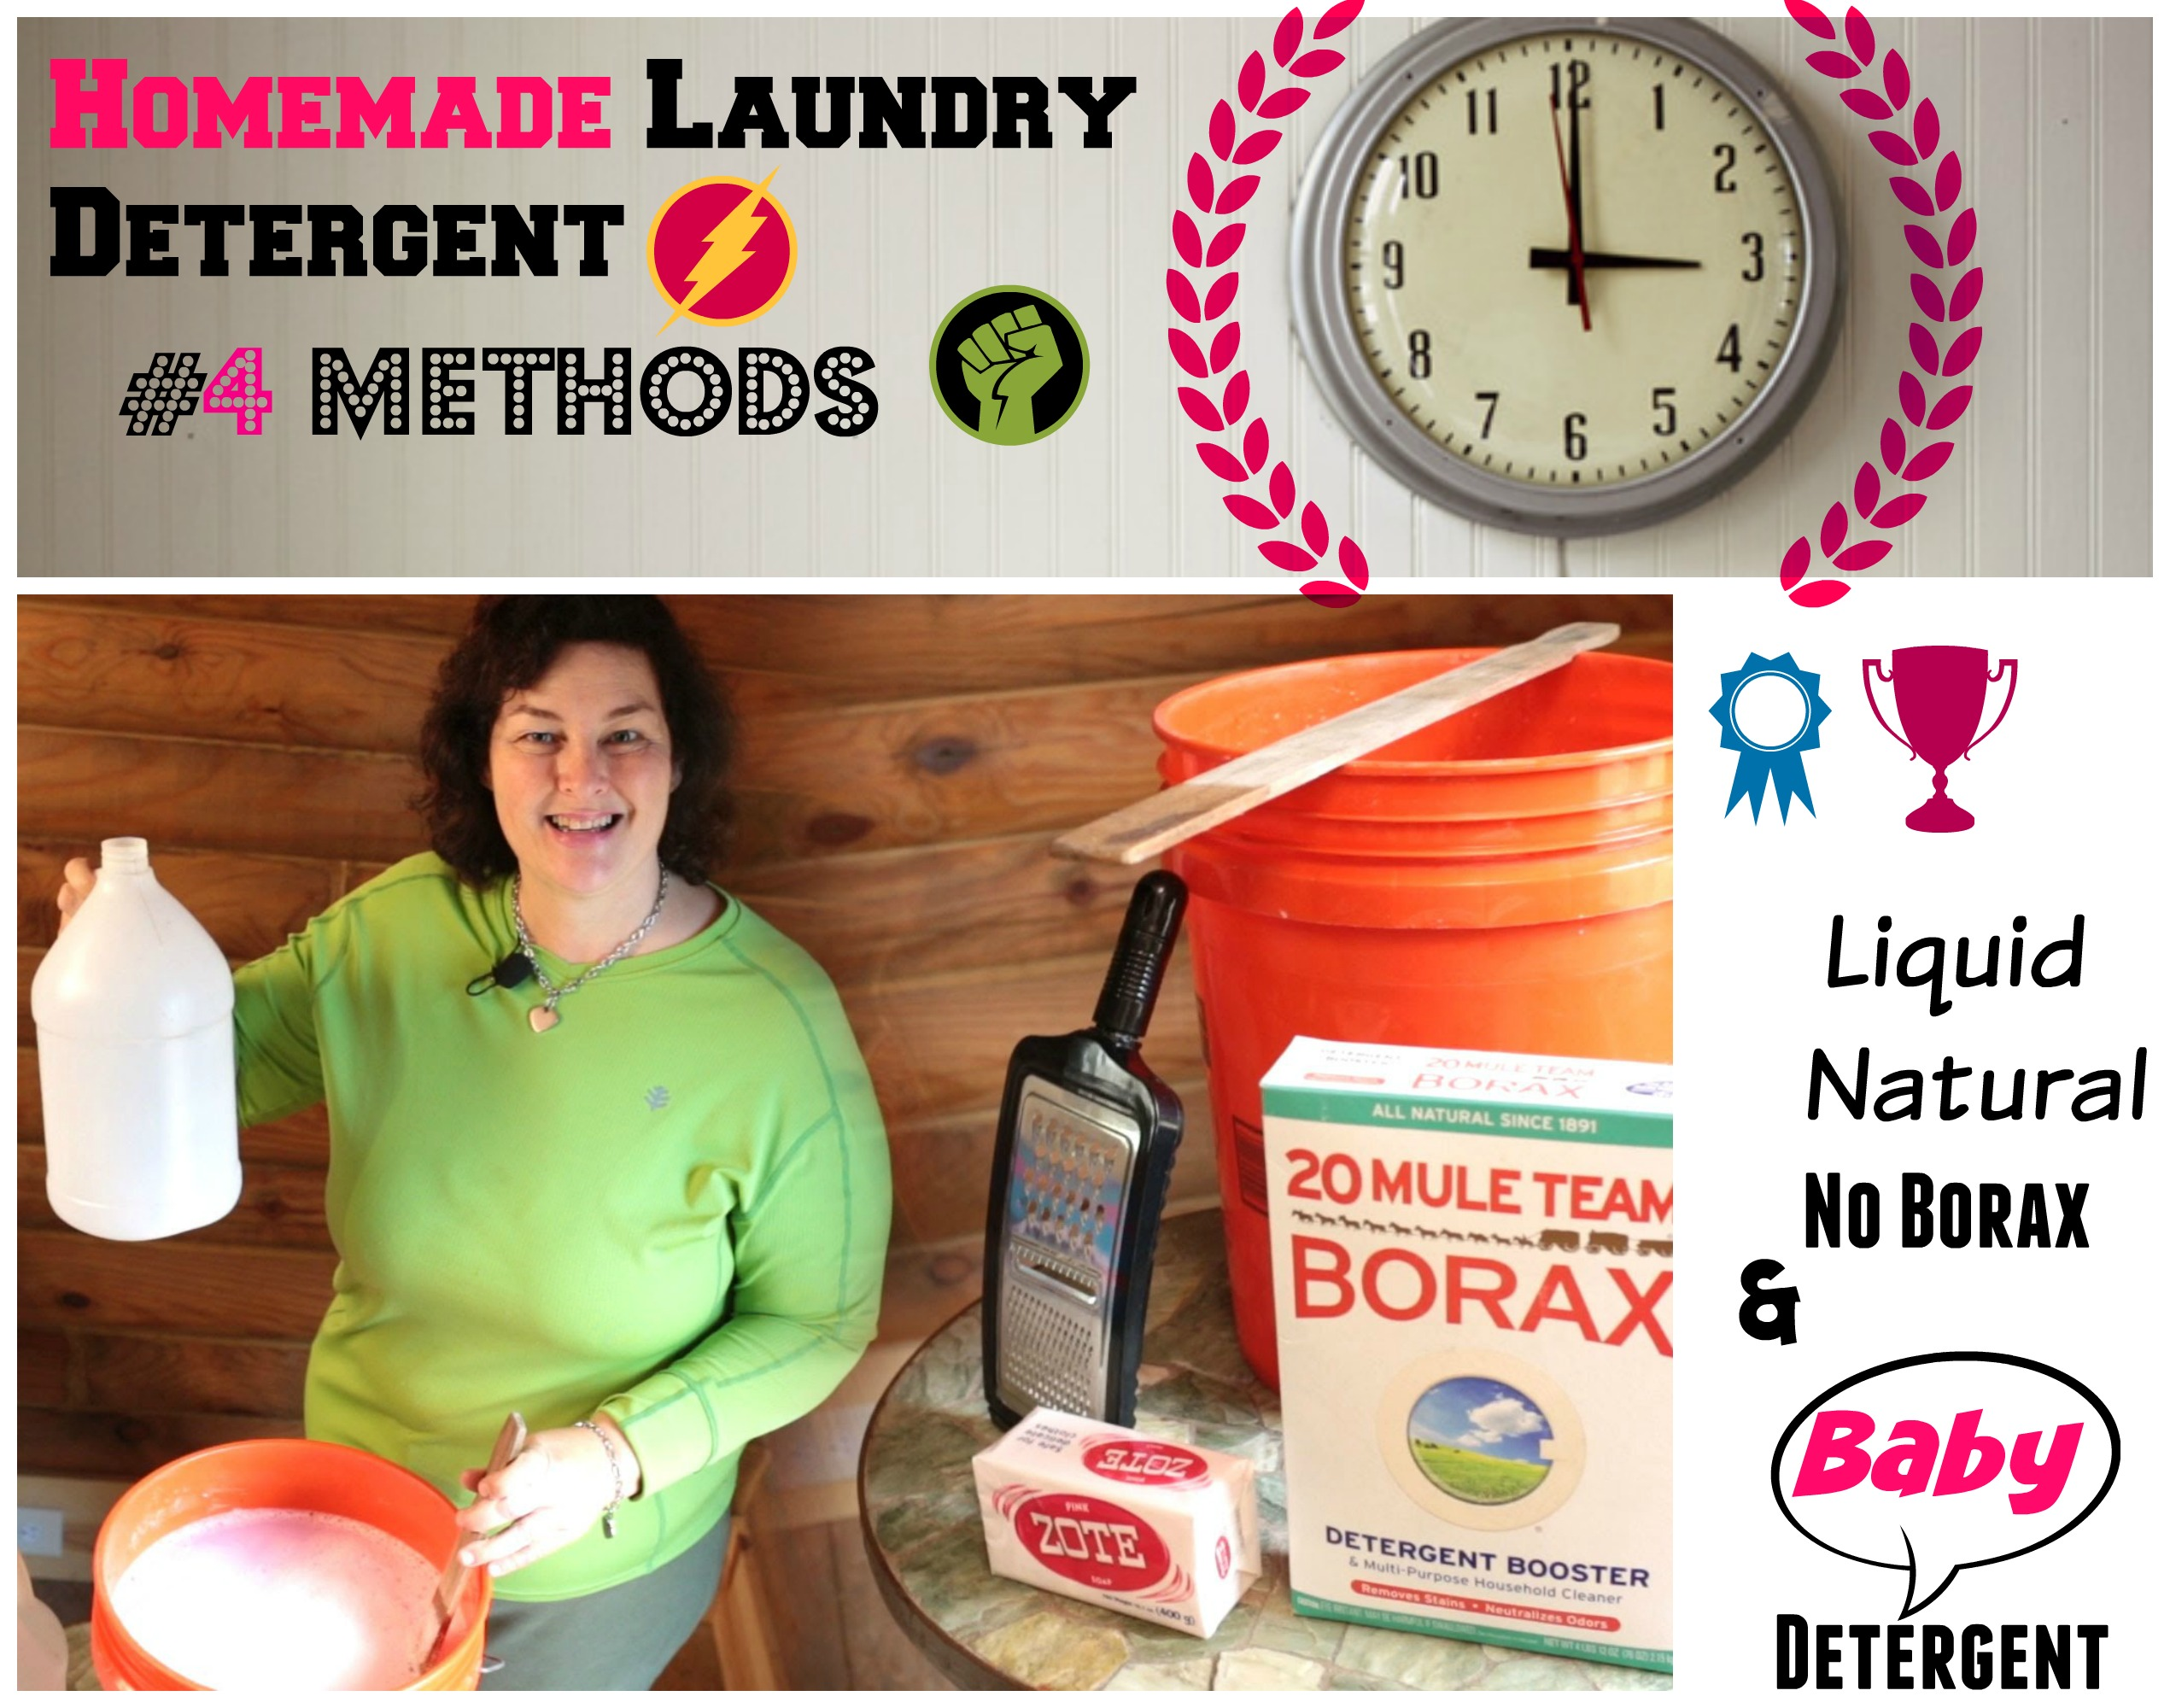 homemade-laundry-detergent-liquid-natural-and-borax-free-for-babies